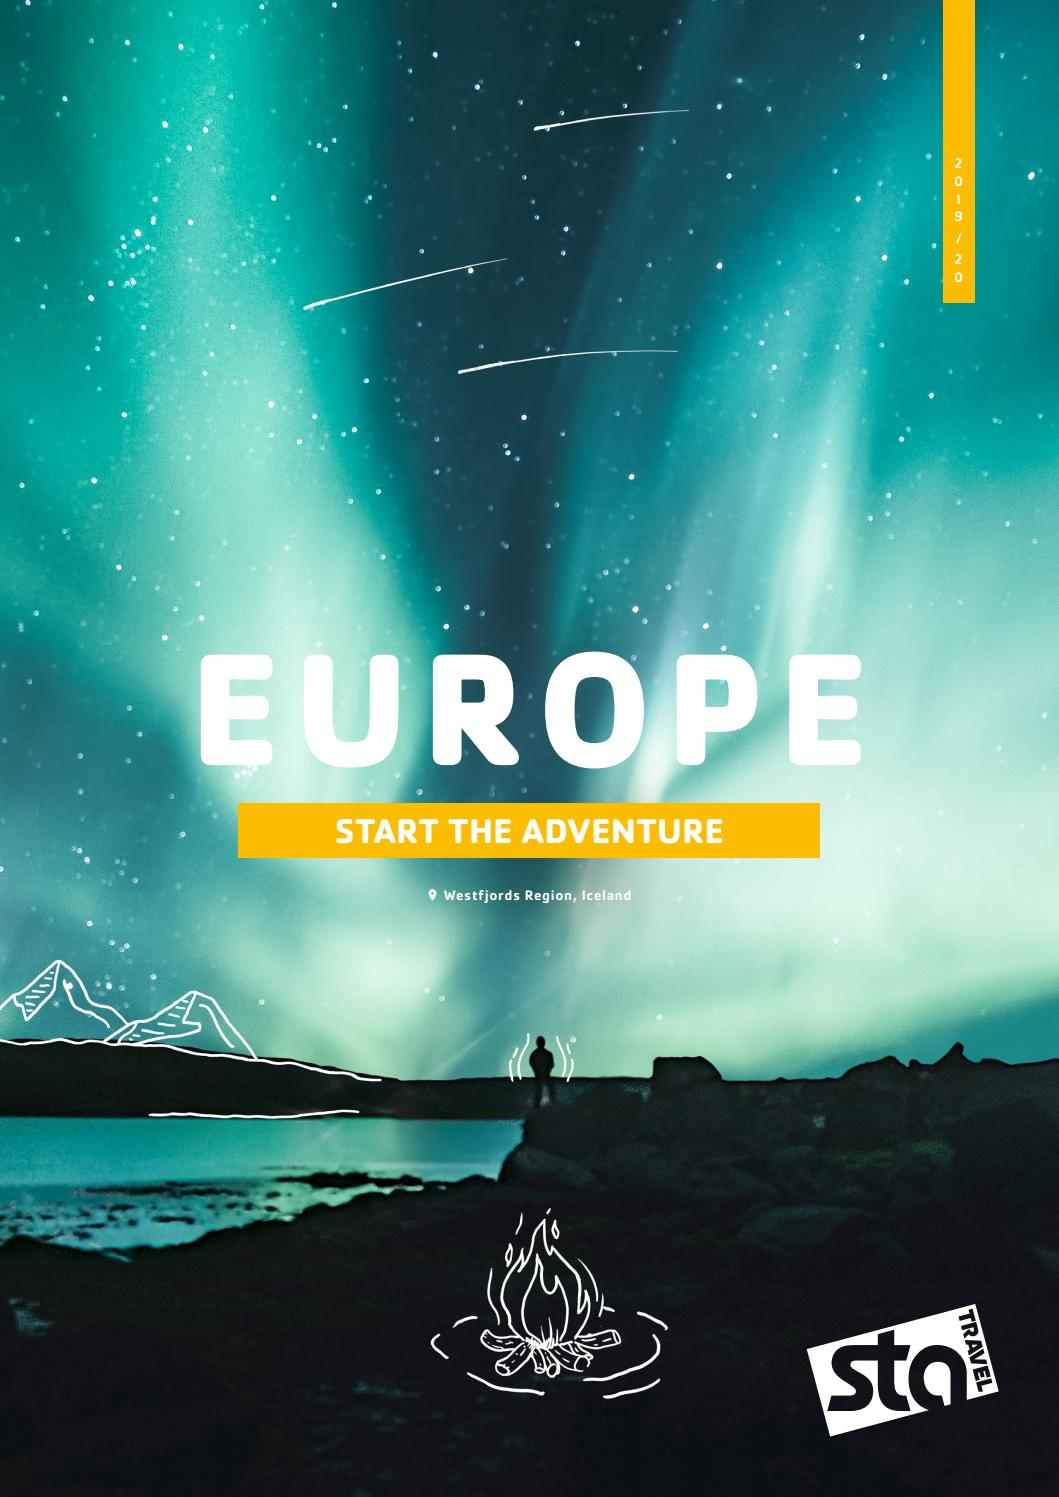 Europe 2019-20 GBP by STA Travel Ltd - issuu